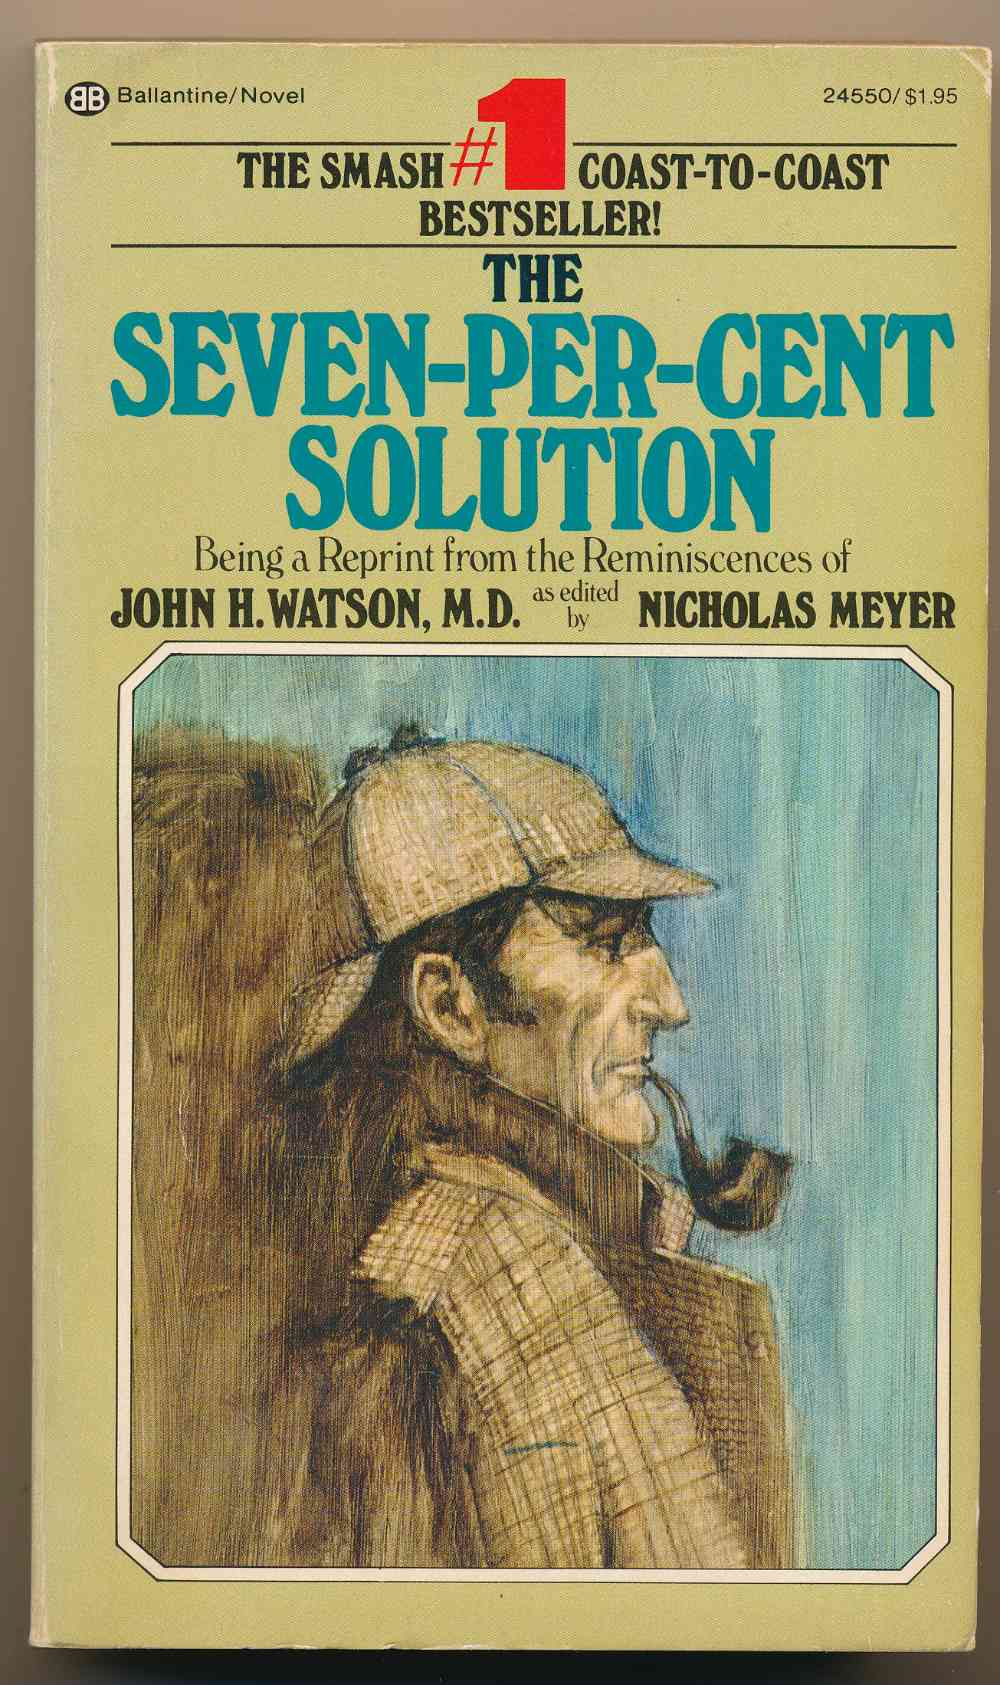 The seven-per-cent solution : being a reprint from the reminiscences of John H. Watson, M.D.